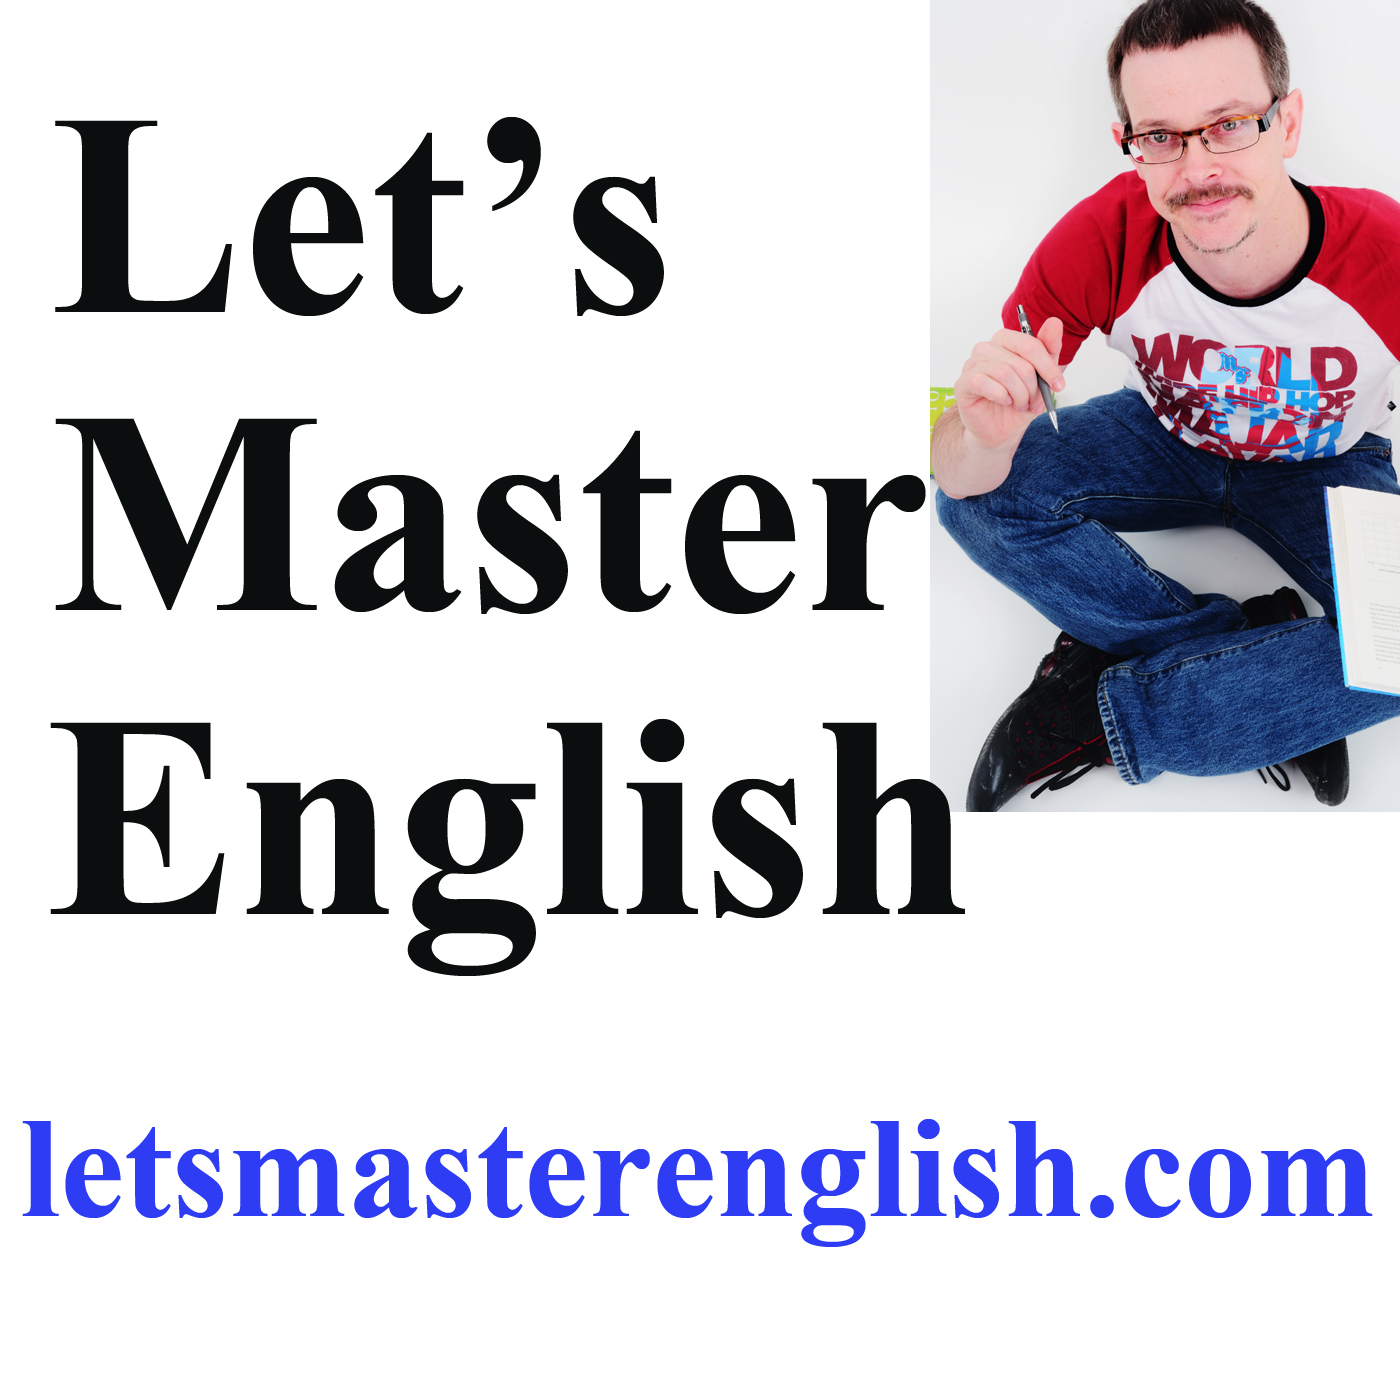 Let's Master English #22: Fresh Air for Sale